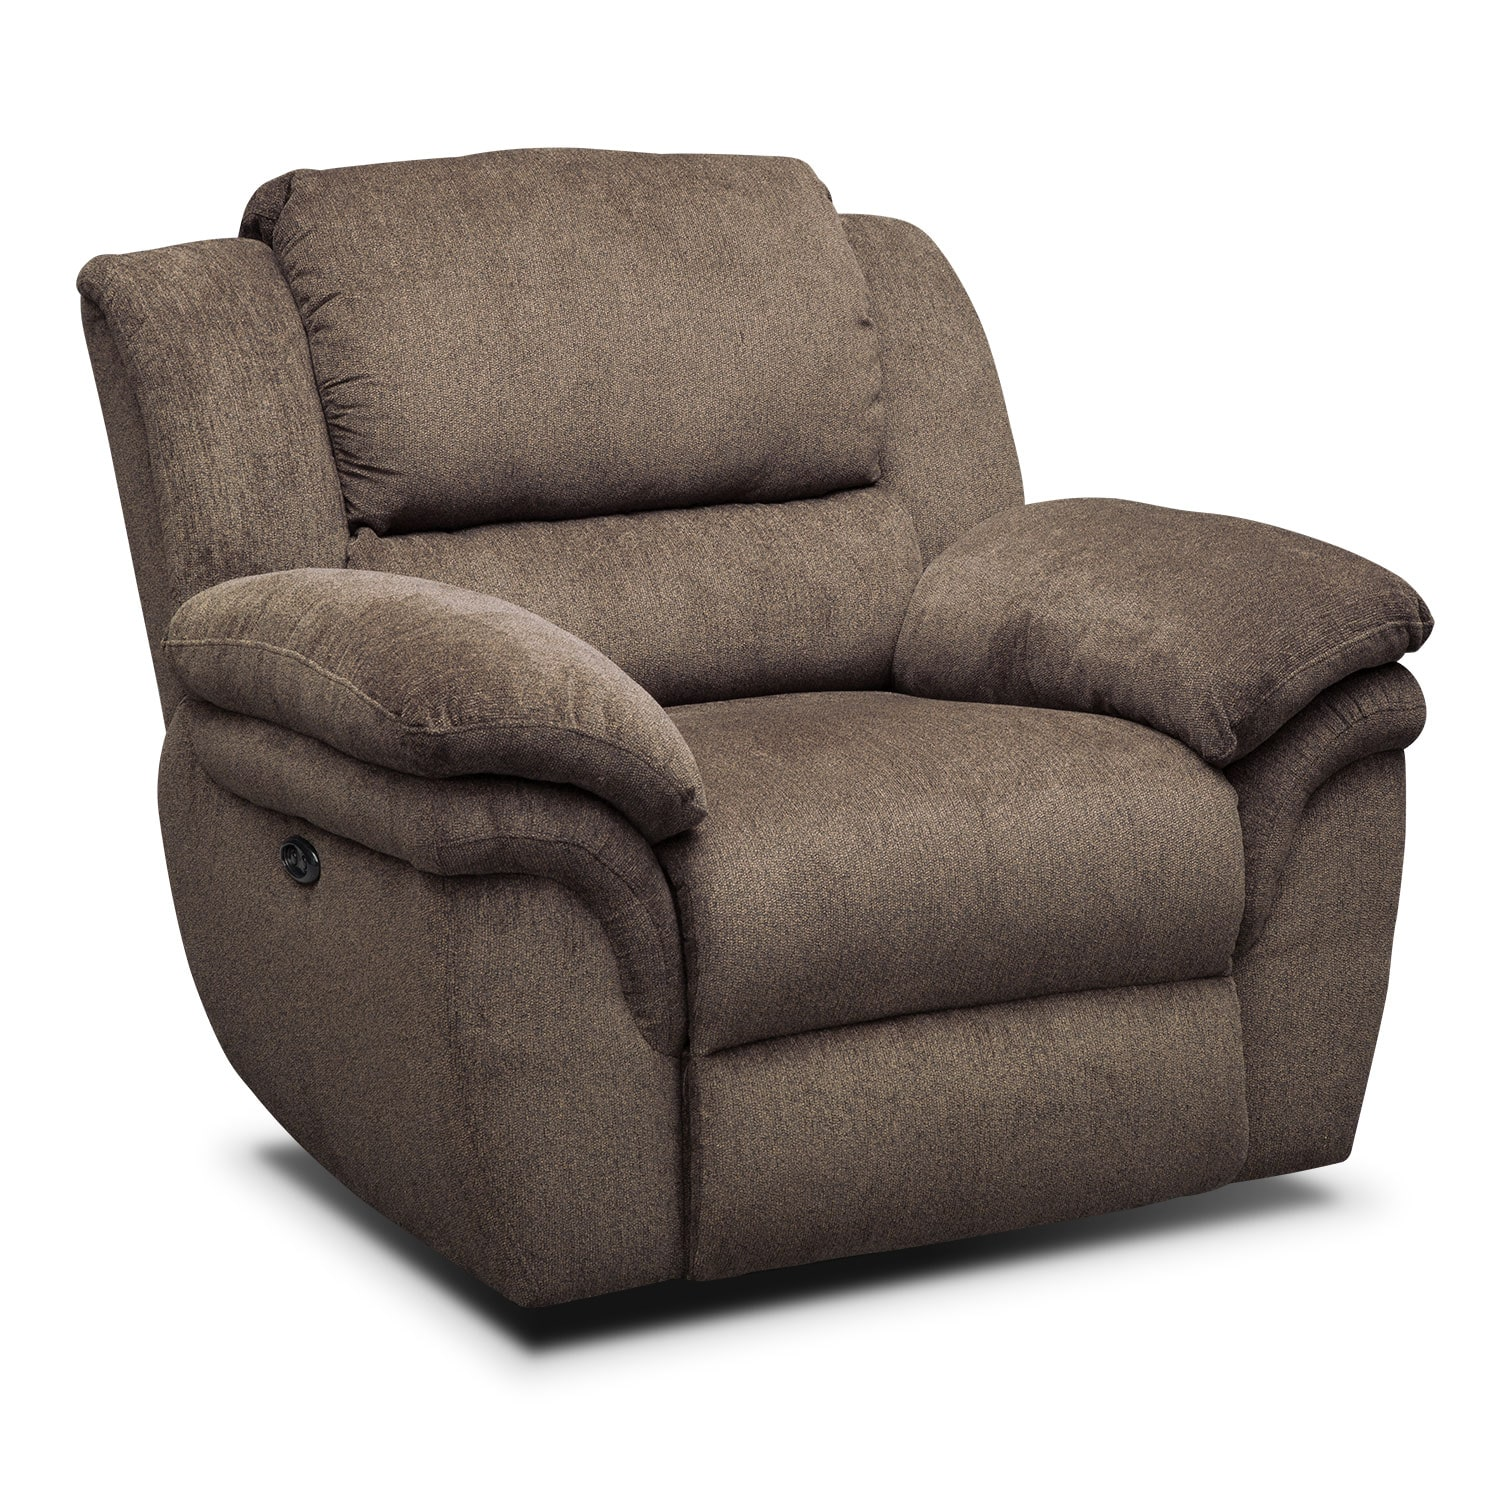 Living Room Furniture - Omni Mocha Power Recliner